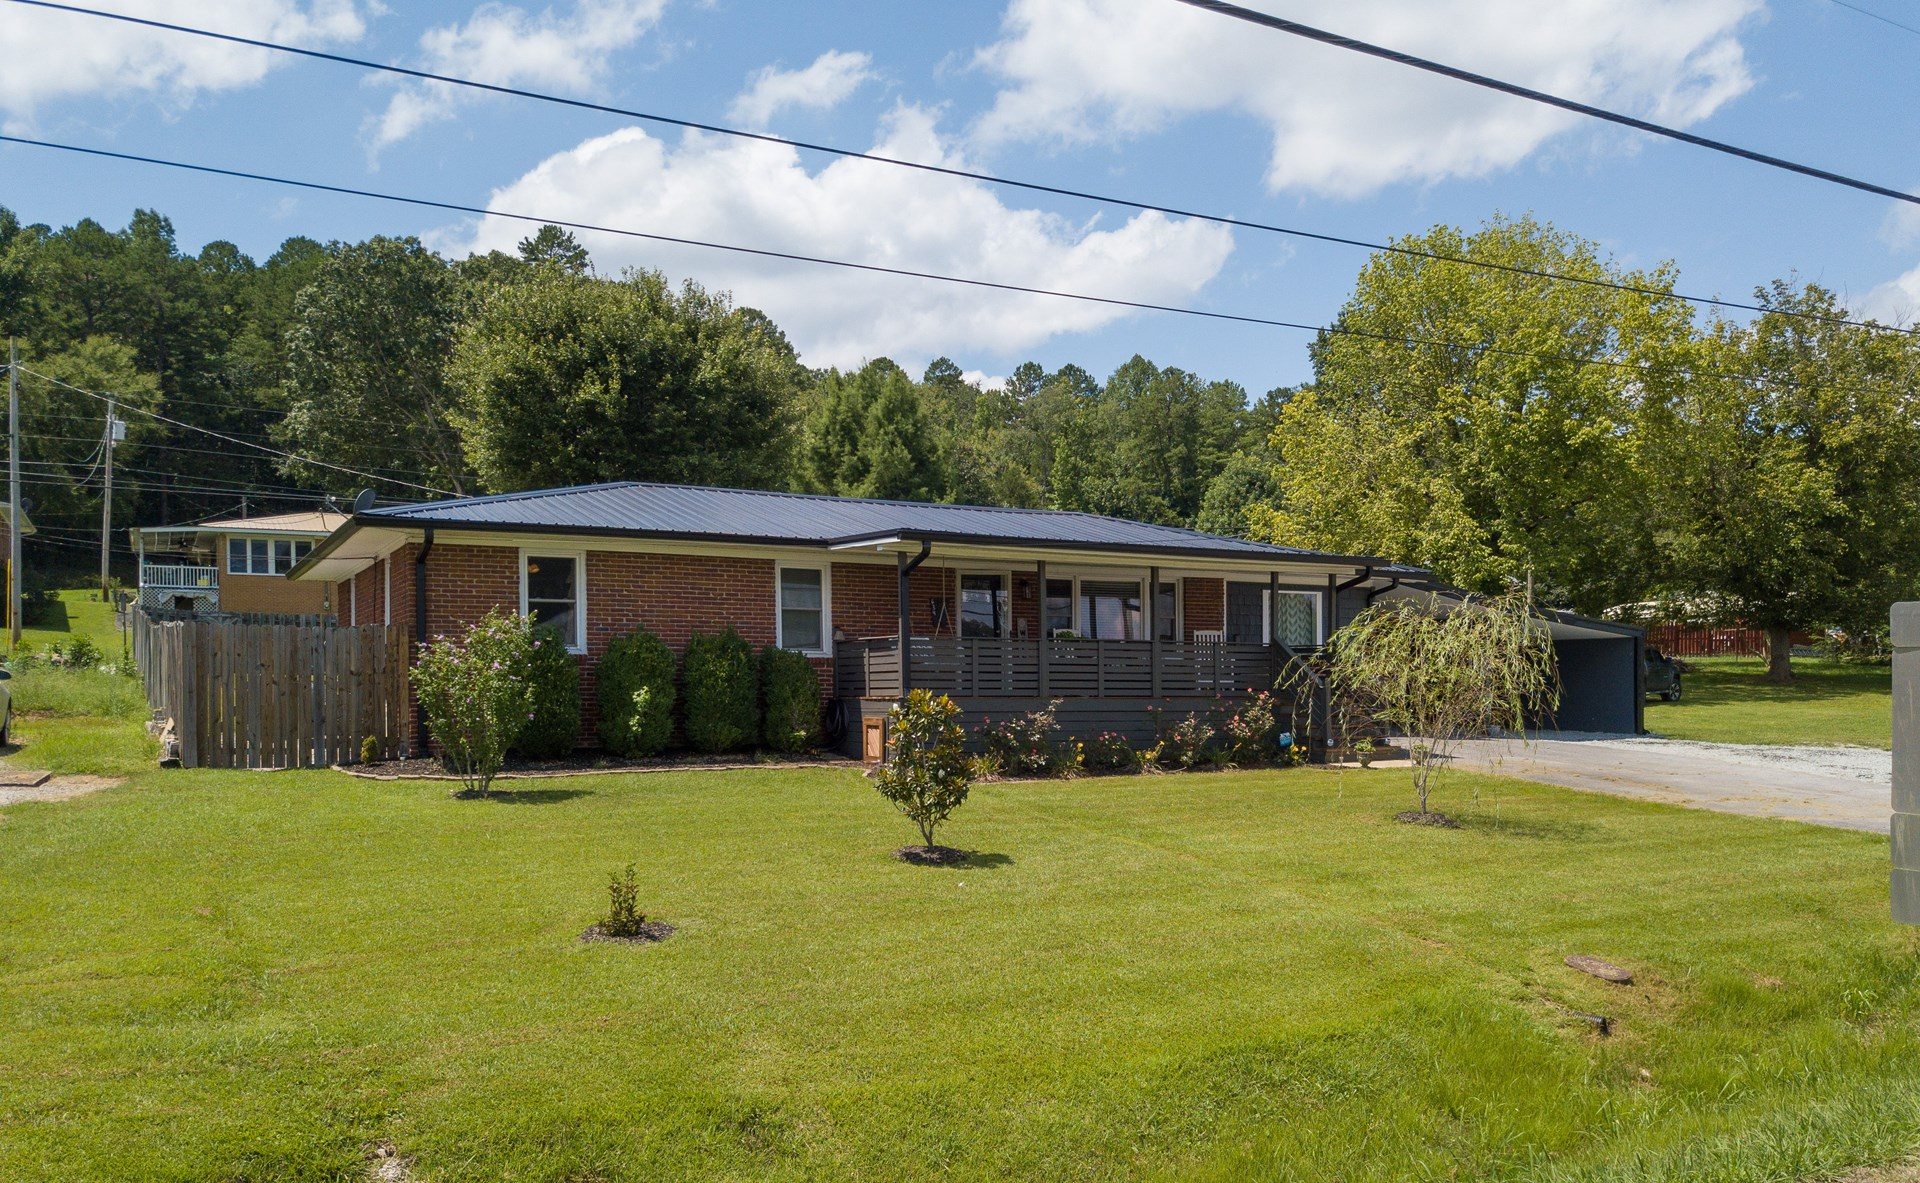 SOLD! 4 BED 2 BA BRICK RANCH HOME WAYNESBORO TN SHOP